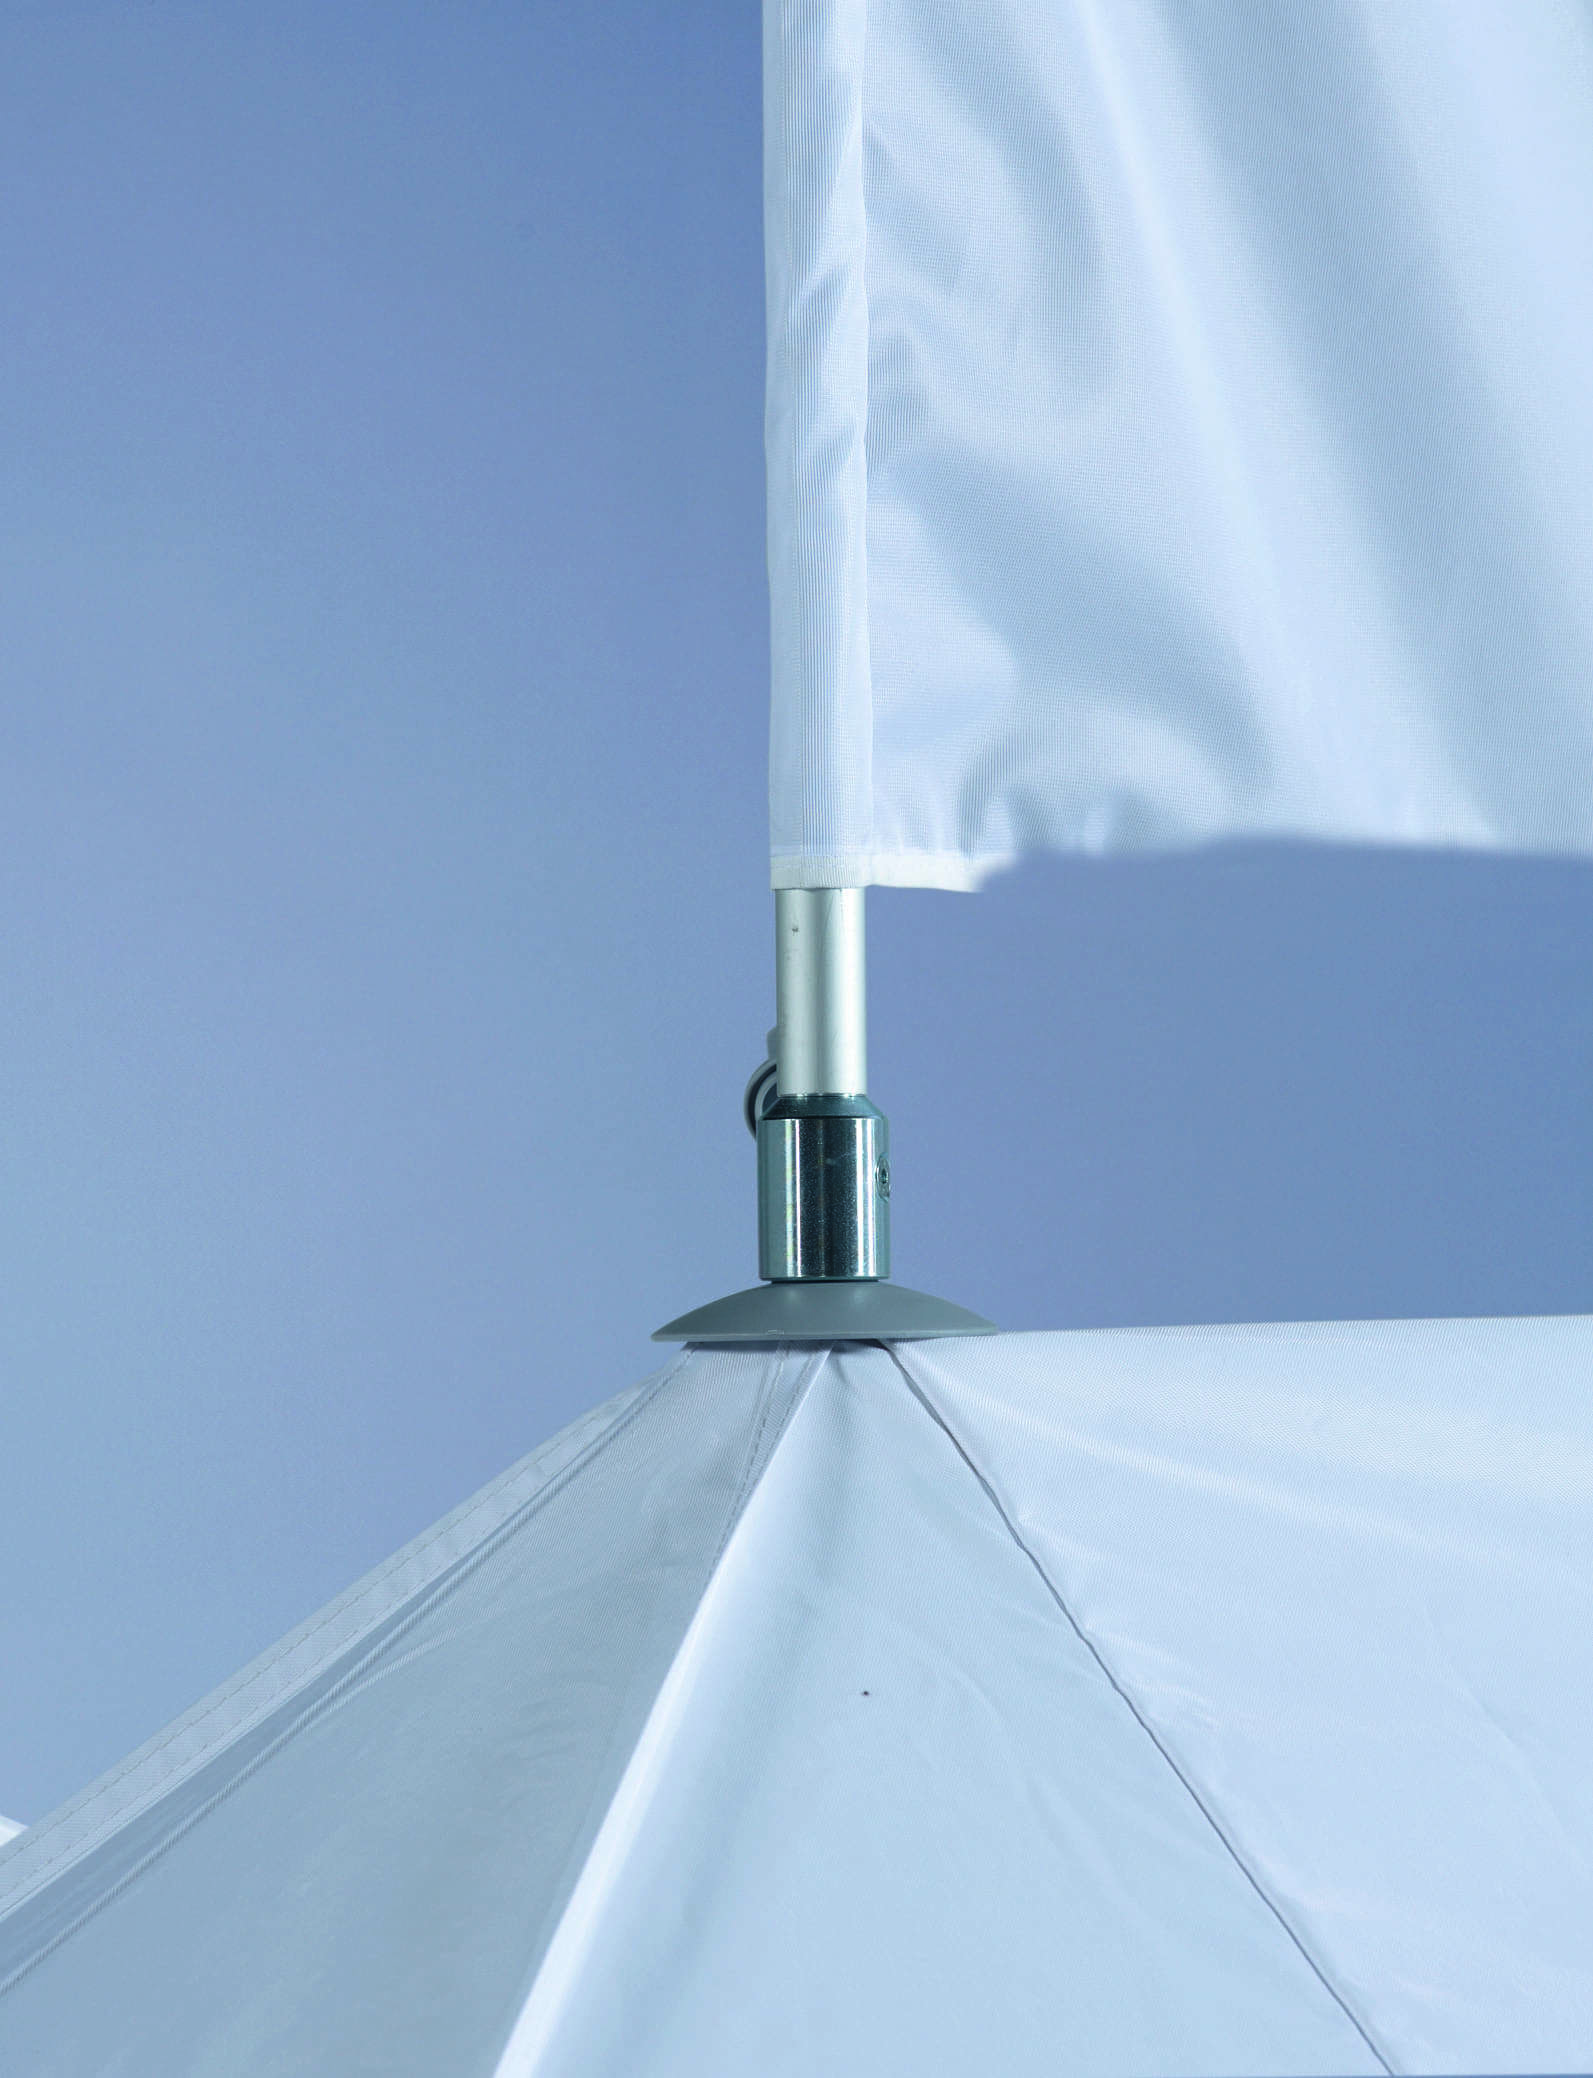 <p>Accessories &#8211; Flag &amp; Flag Pole</p> <p>Possible in every tent, apart from the Shop with 4 awnings. A great way of gaining extra visibility and awareness of your business or campaign at the event you are attending.</p>